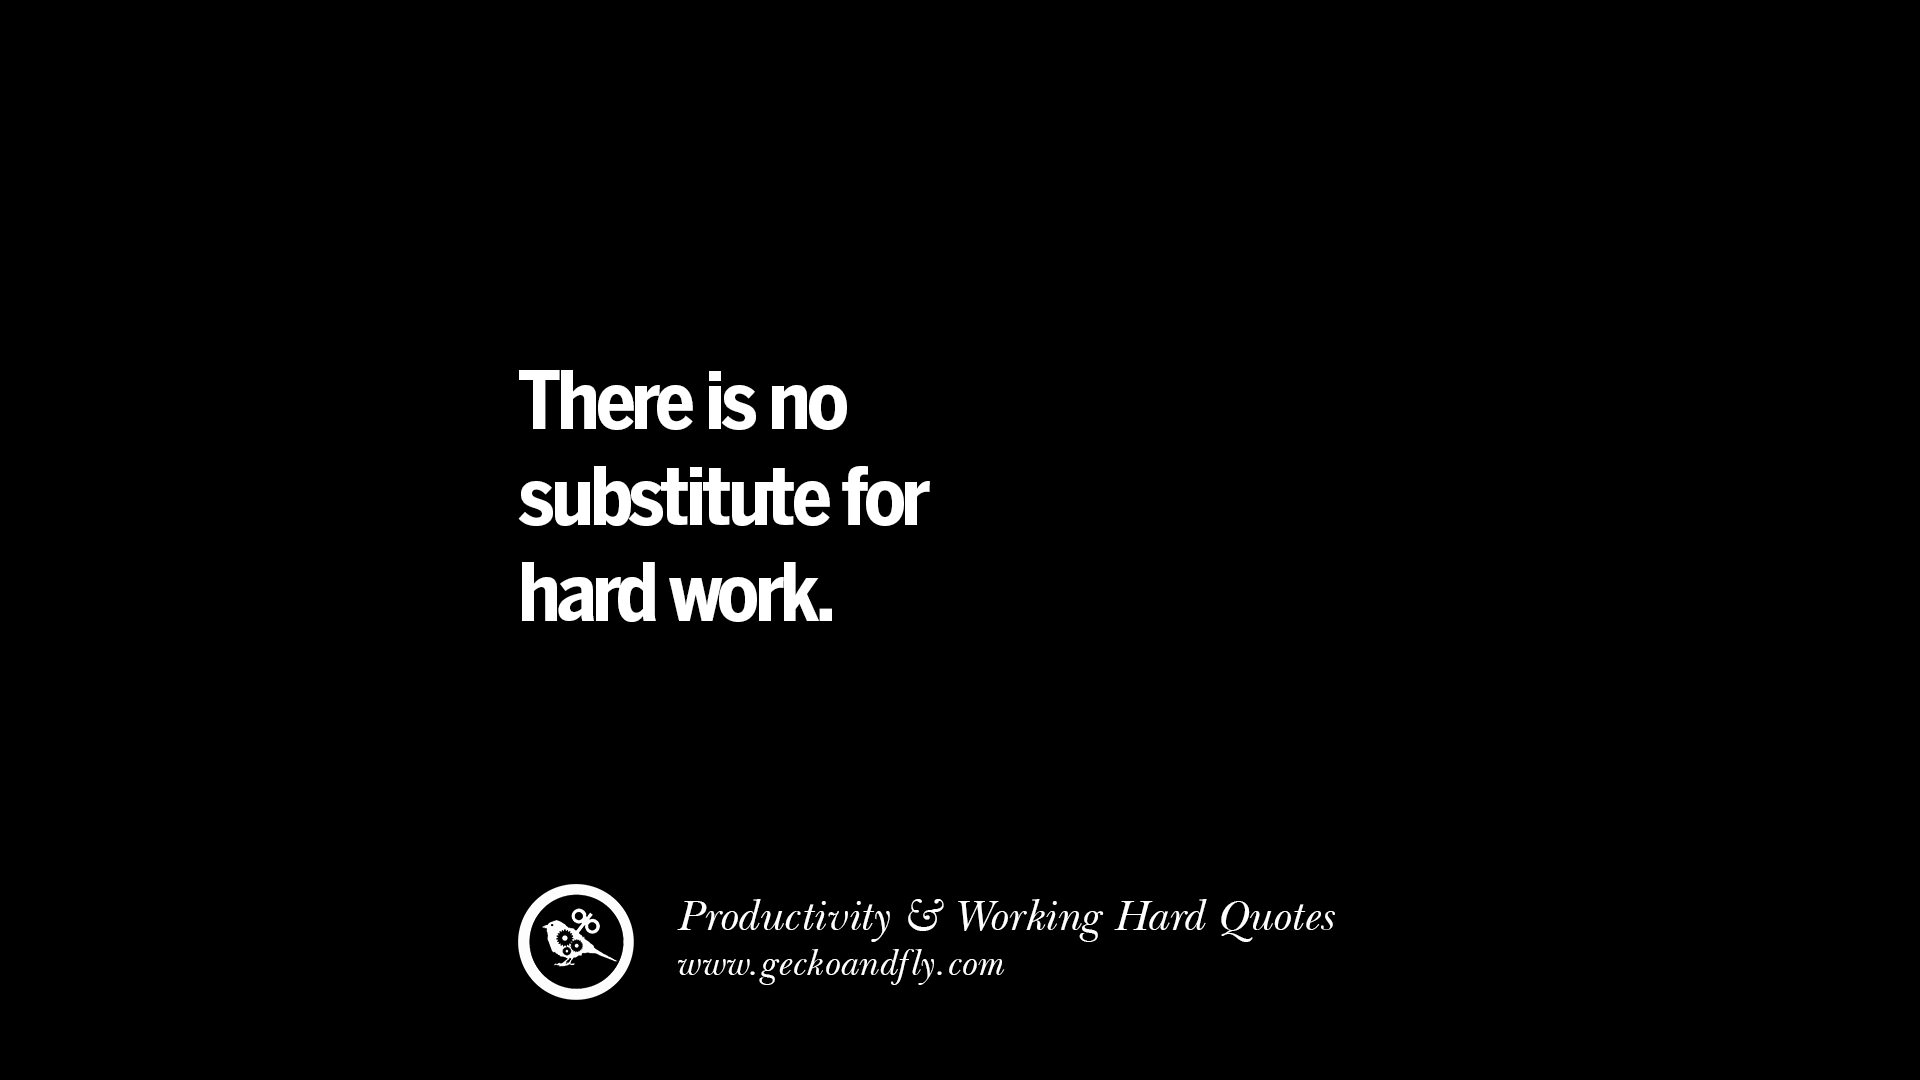 30 Uplifting Quotes On Increasing Productivity And Working Hard